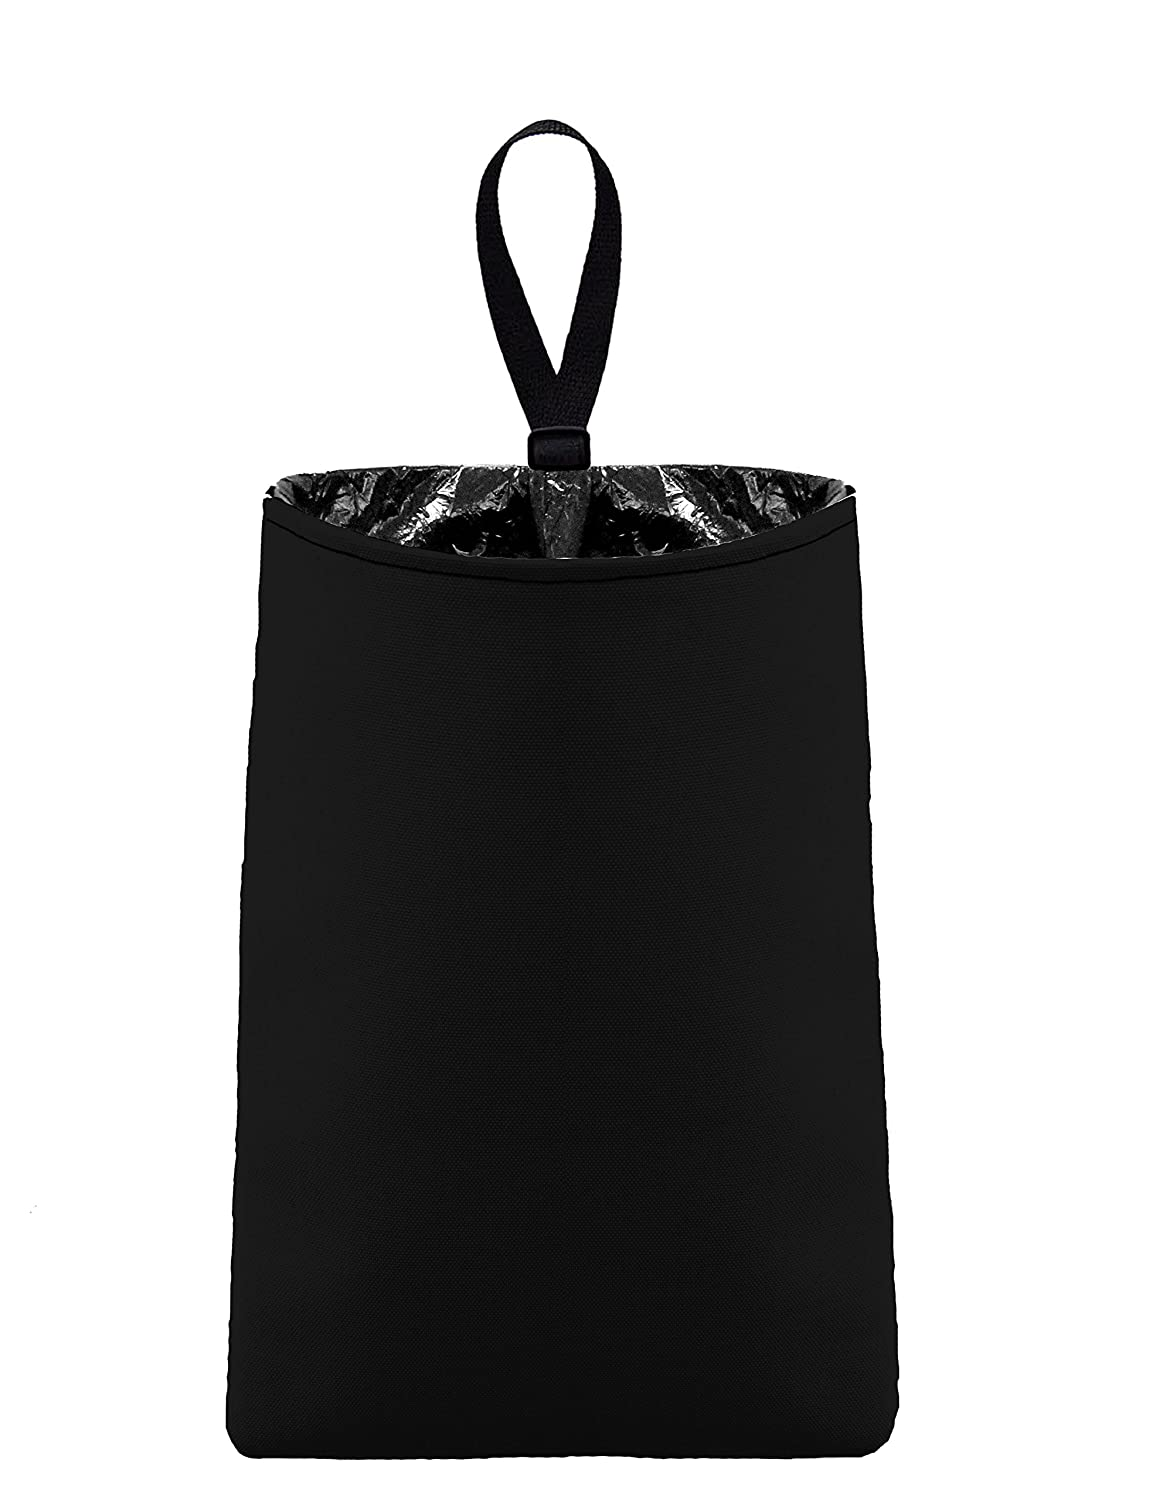 The Mod Mobile Car Trash Can Auto Trash Bag (Black) Slim Design Conceals Plastic Bag - Car Trash Bag Accessory